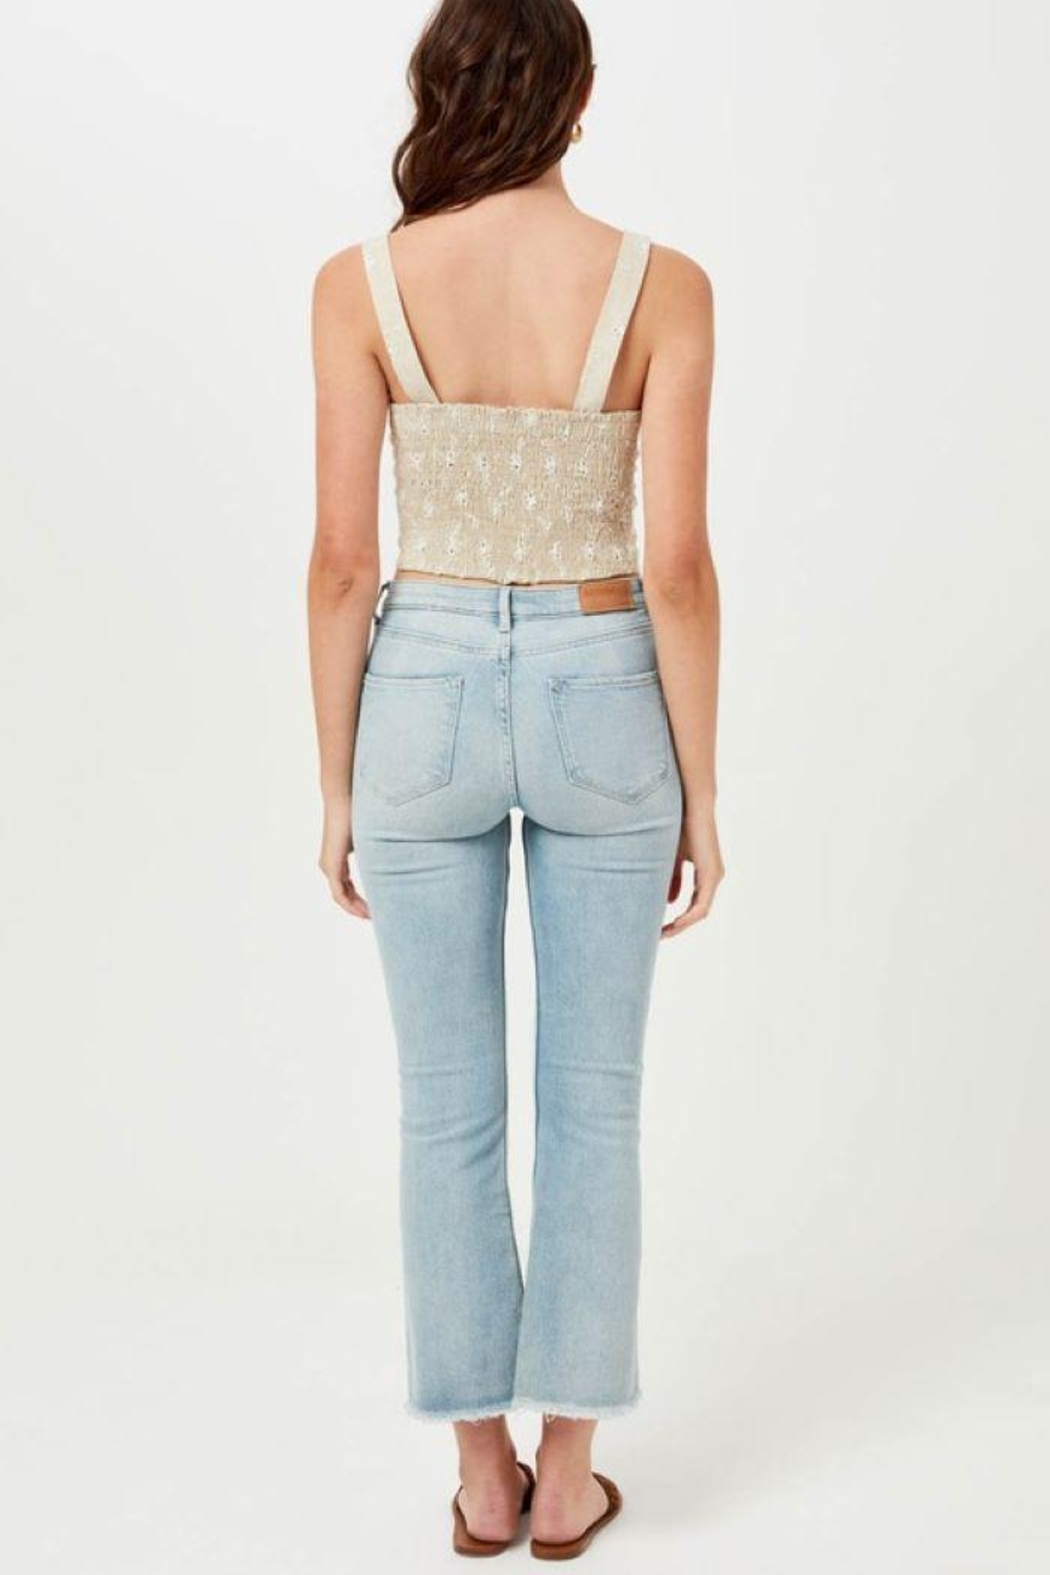 Lush Linen Floral Embroidered Crop Top - Back Cropped Image